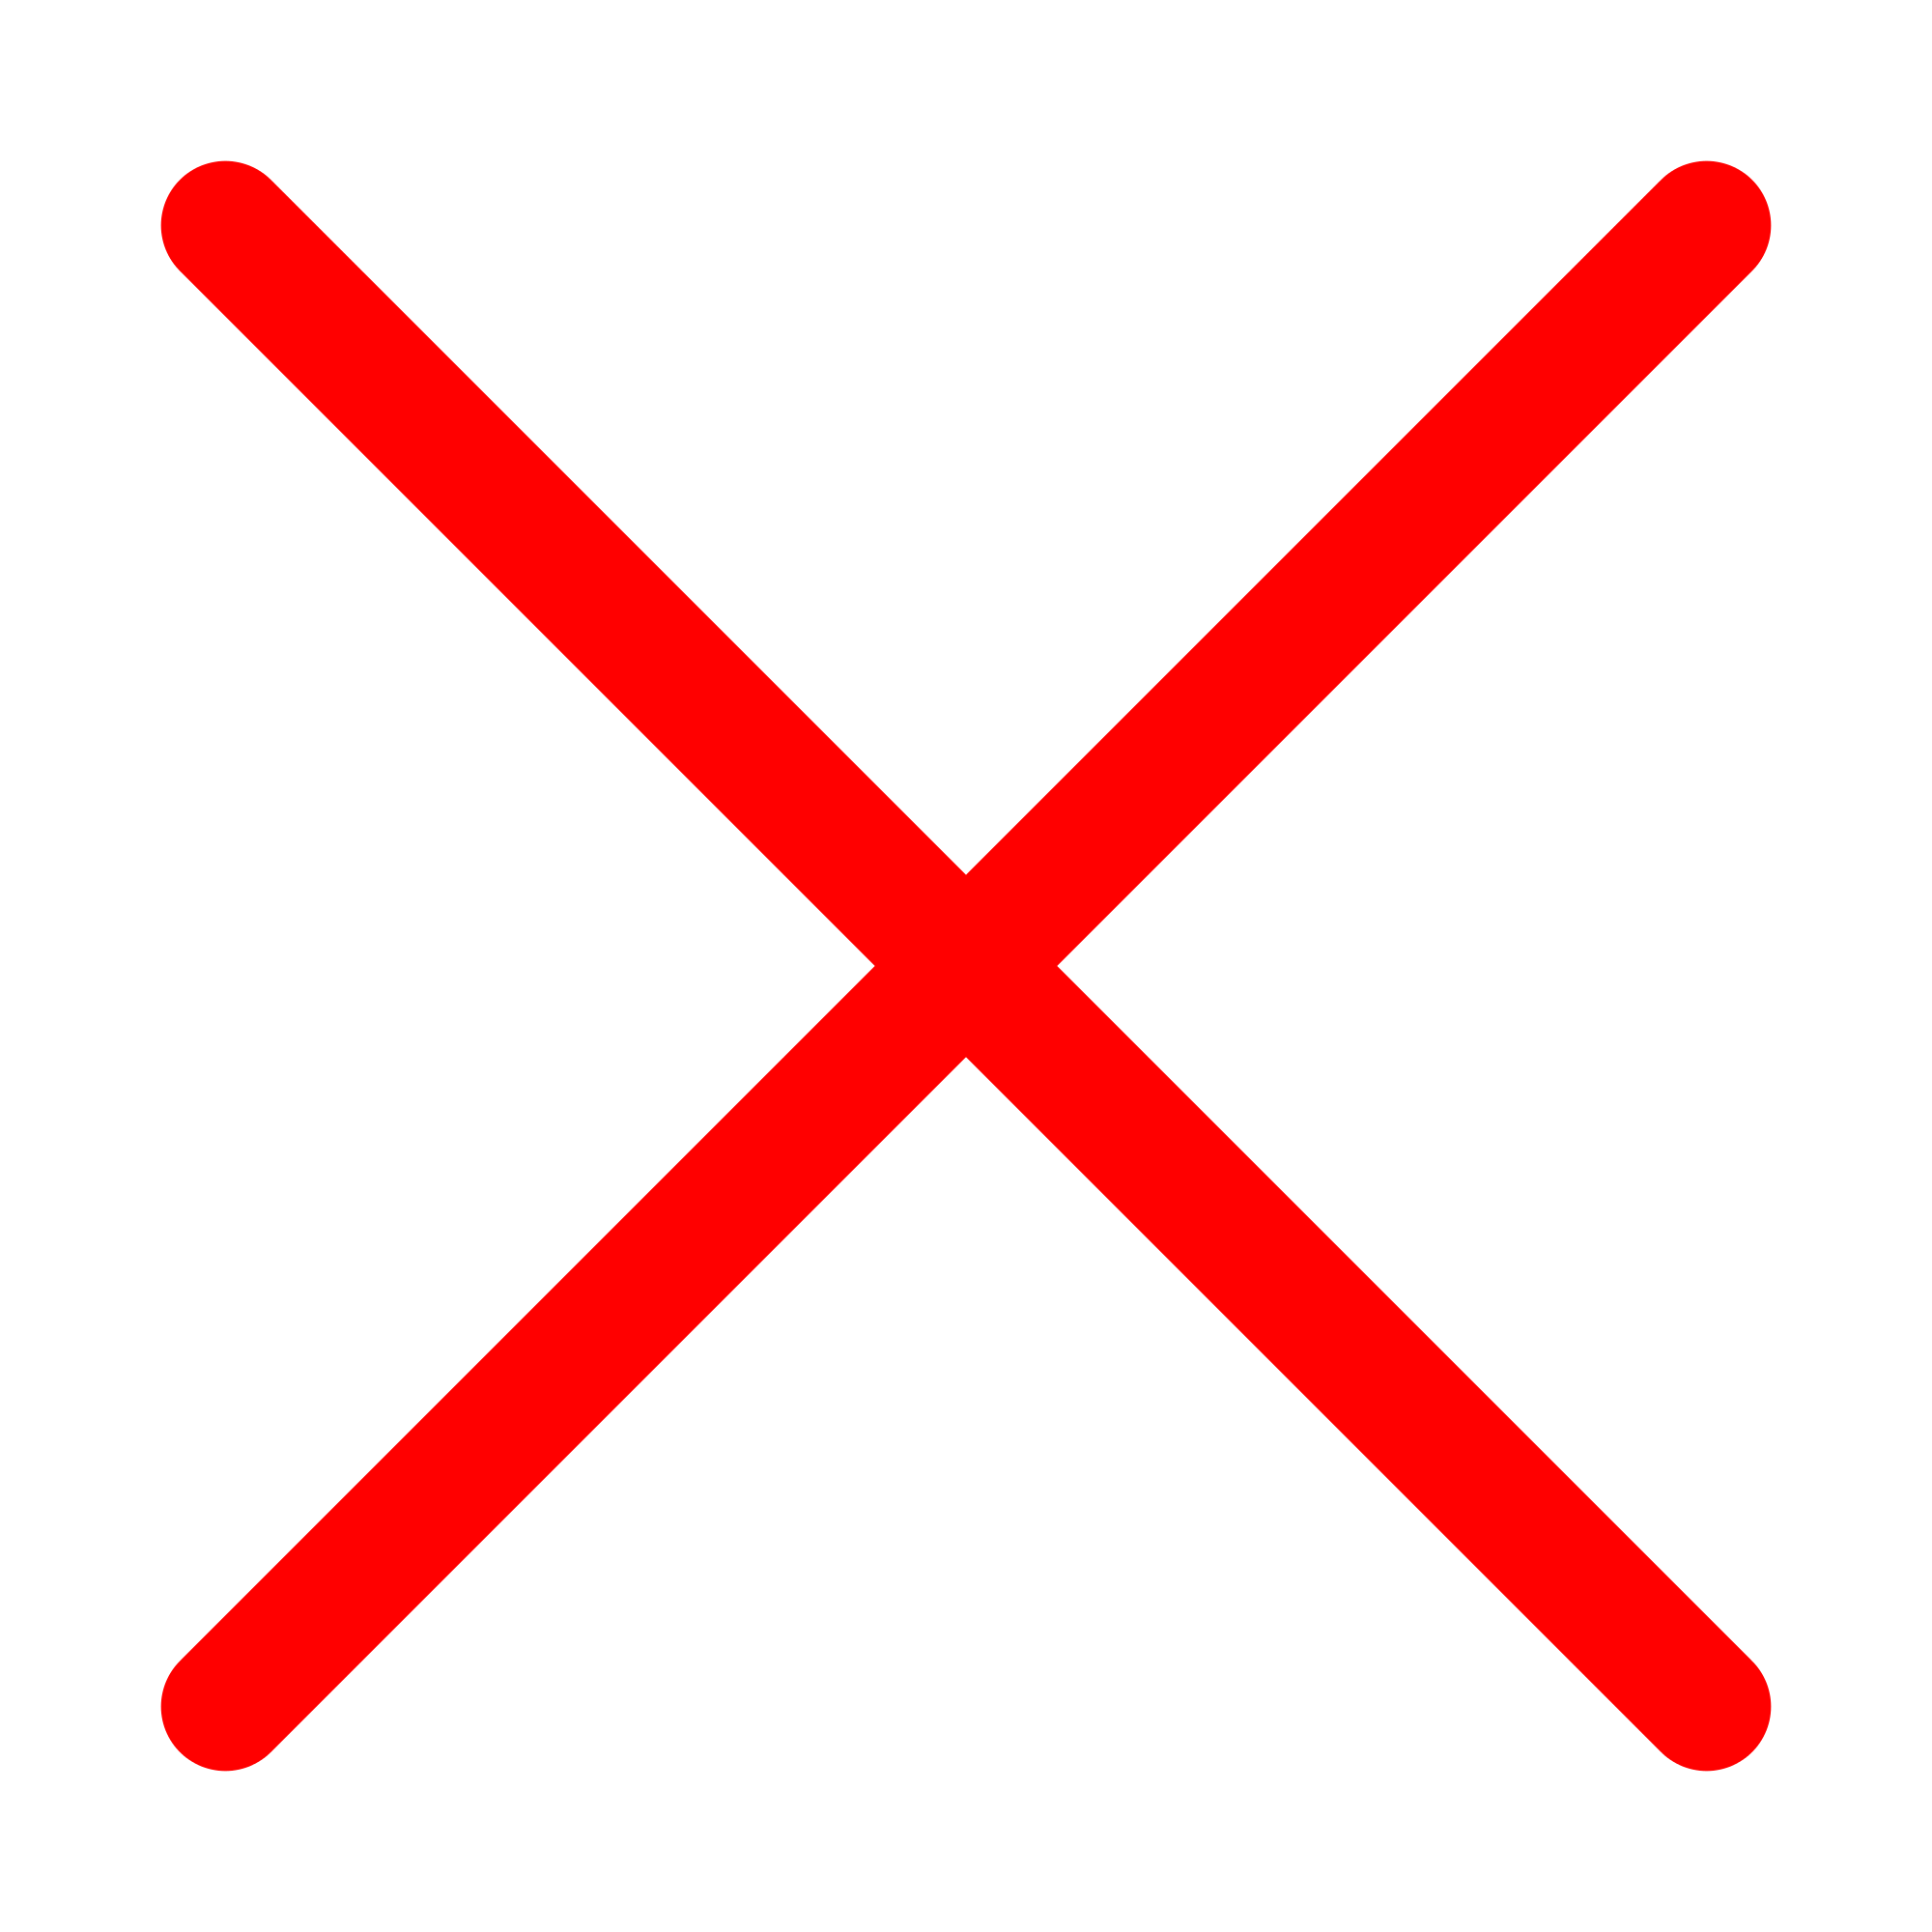 File:Red Cross.svg